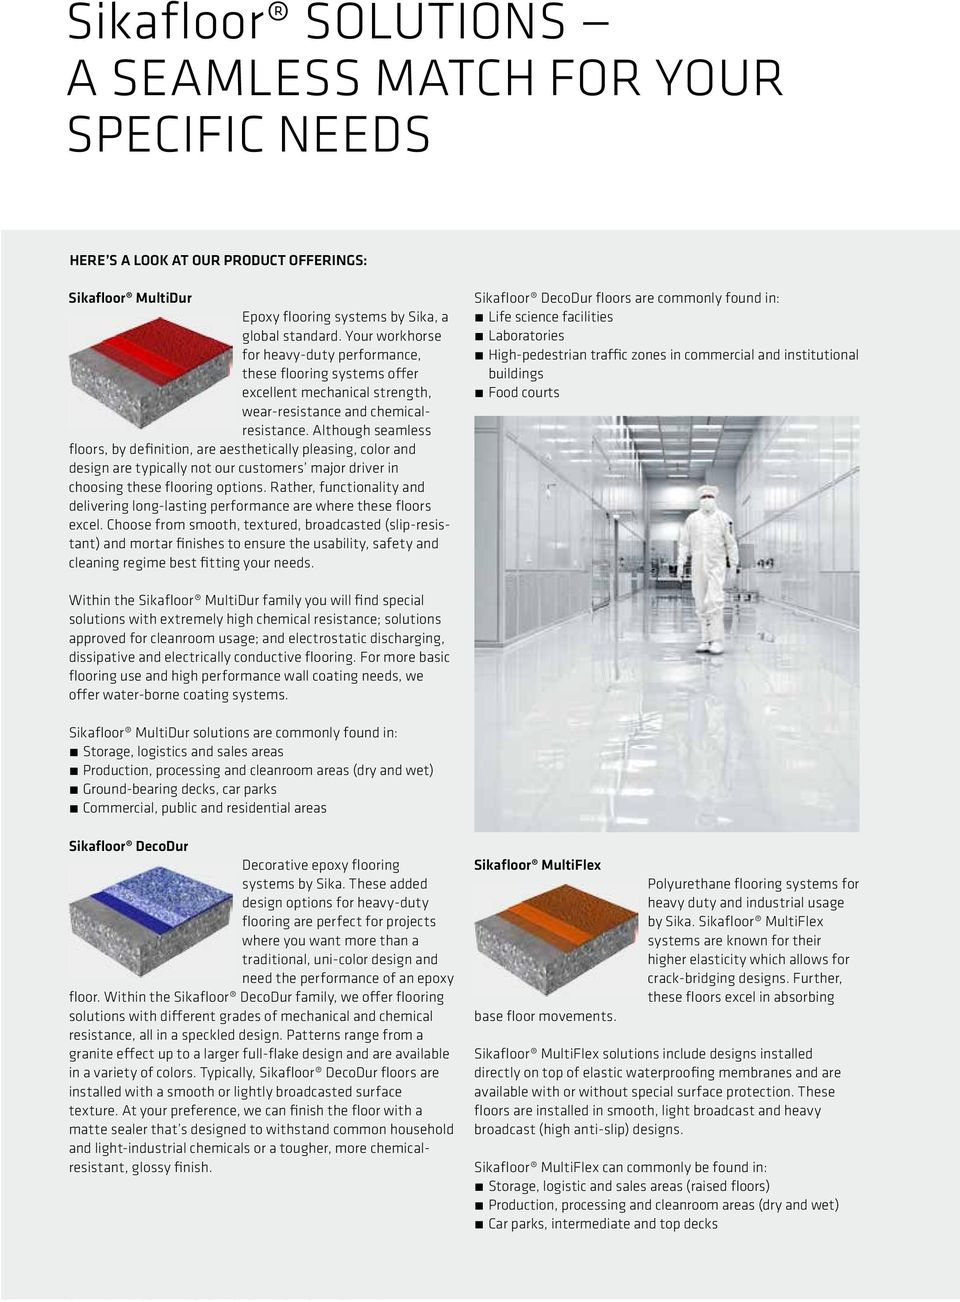 FLOORING SIKA TECHNOLOGY AND CONCEPTS FOR FLOORING AND